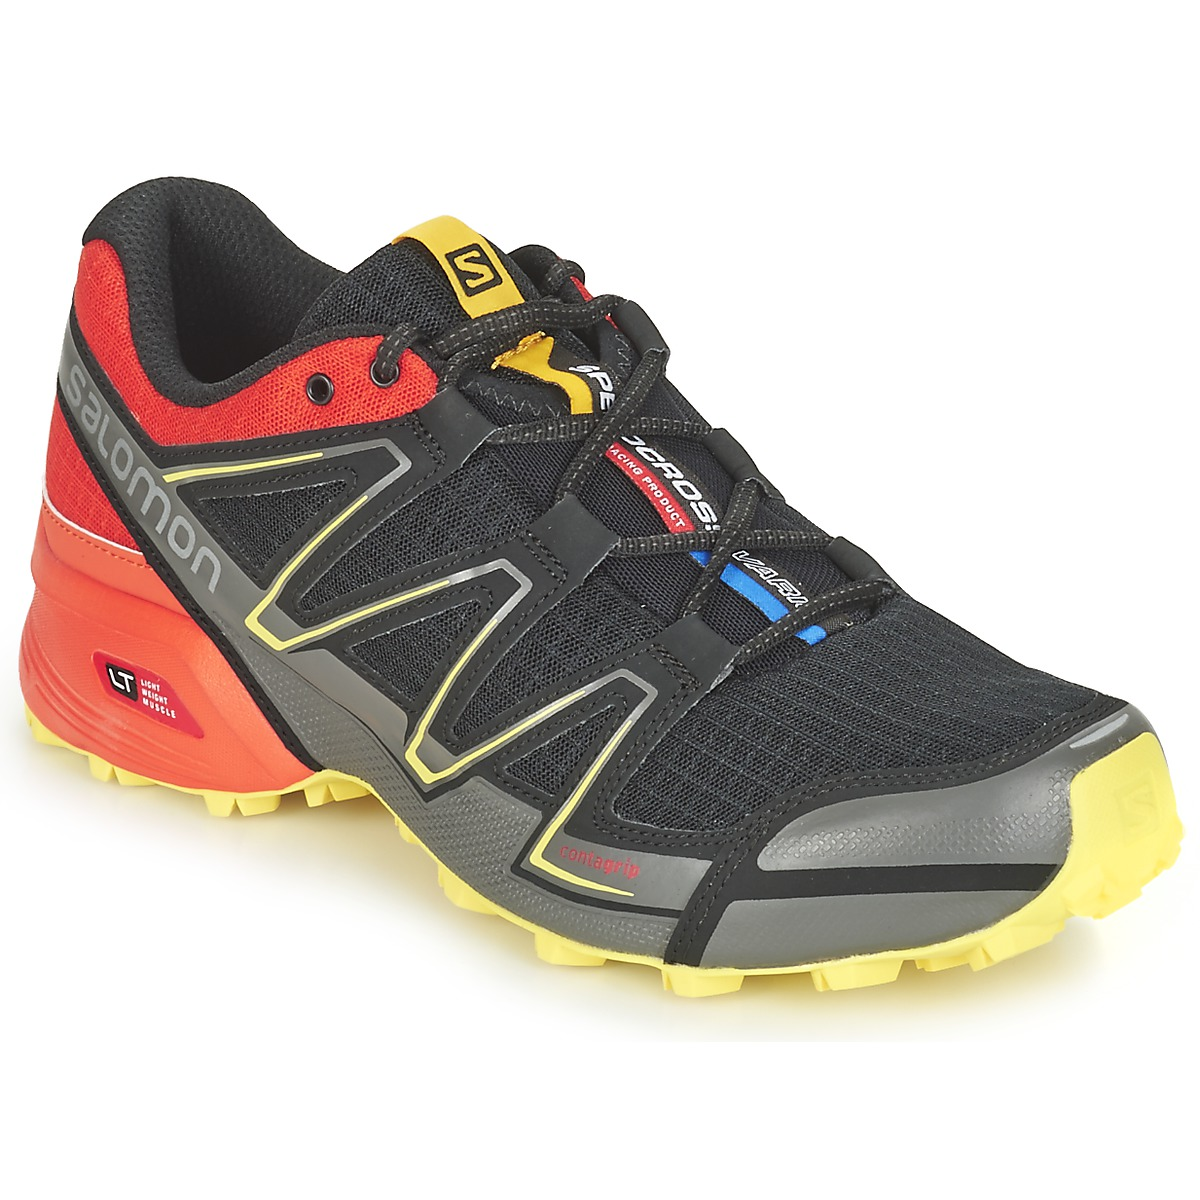 Chaussures-de-running Salomon SPEEDCROSS VARIO Noir / Rouge / Jaune